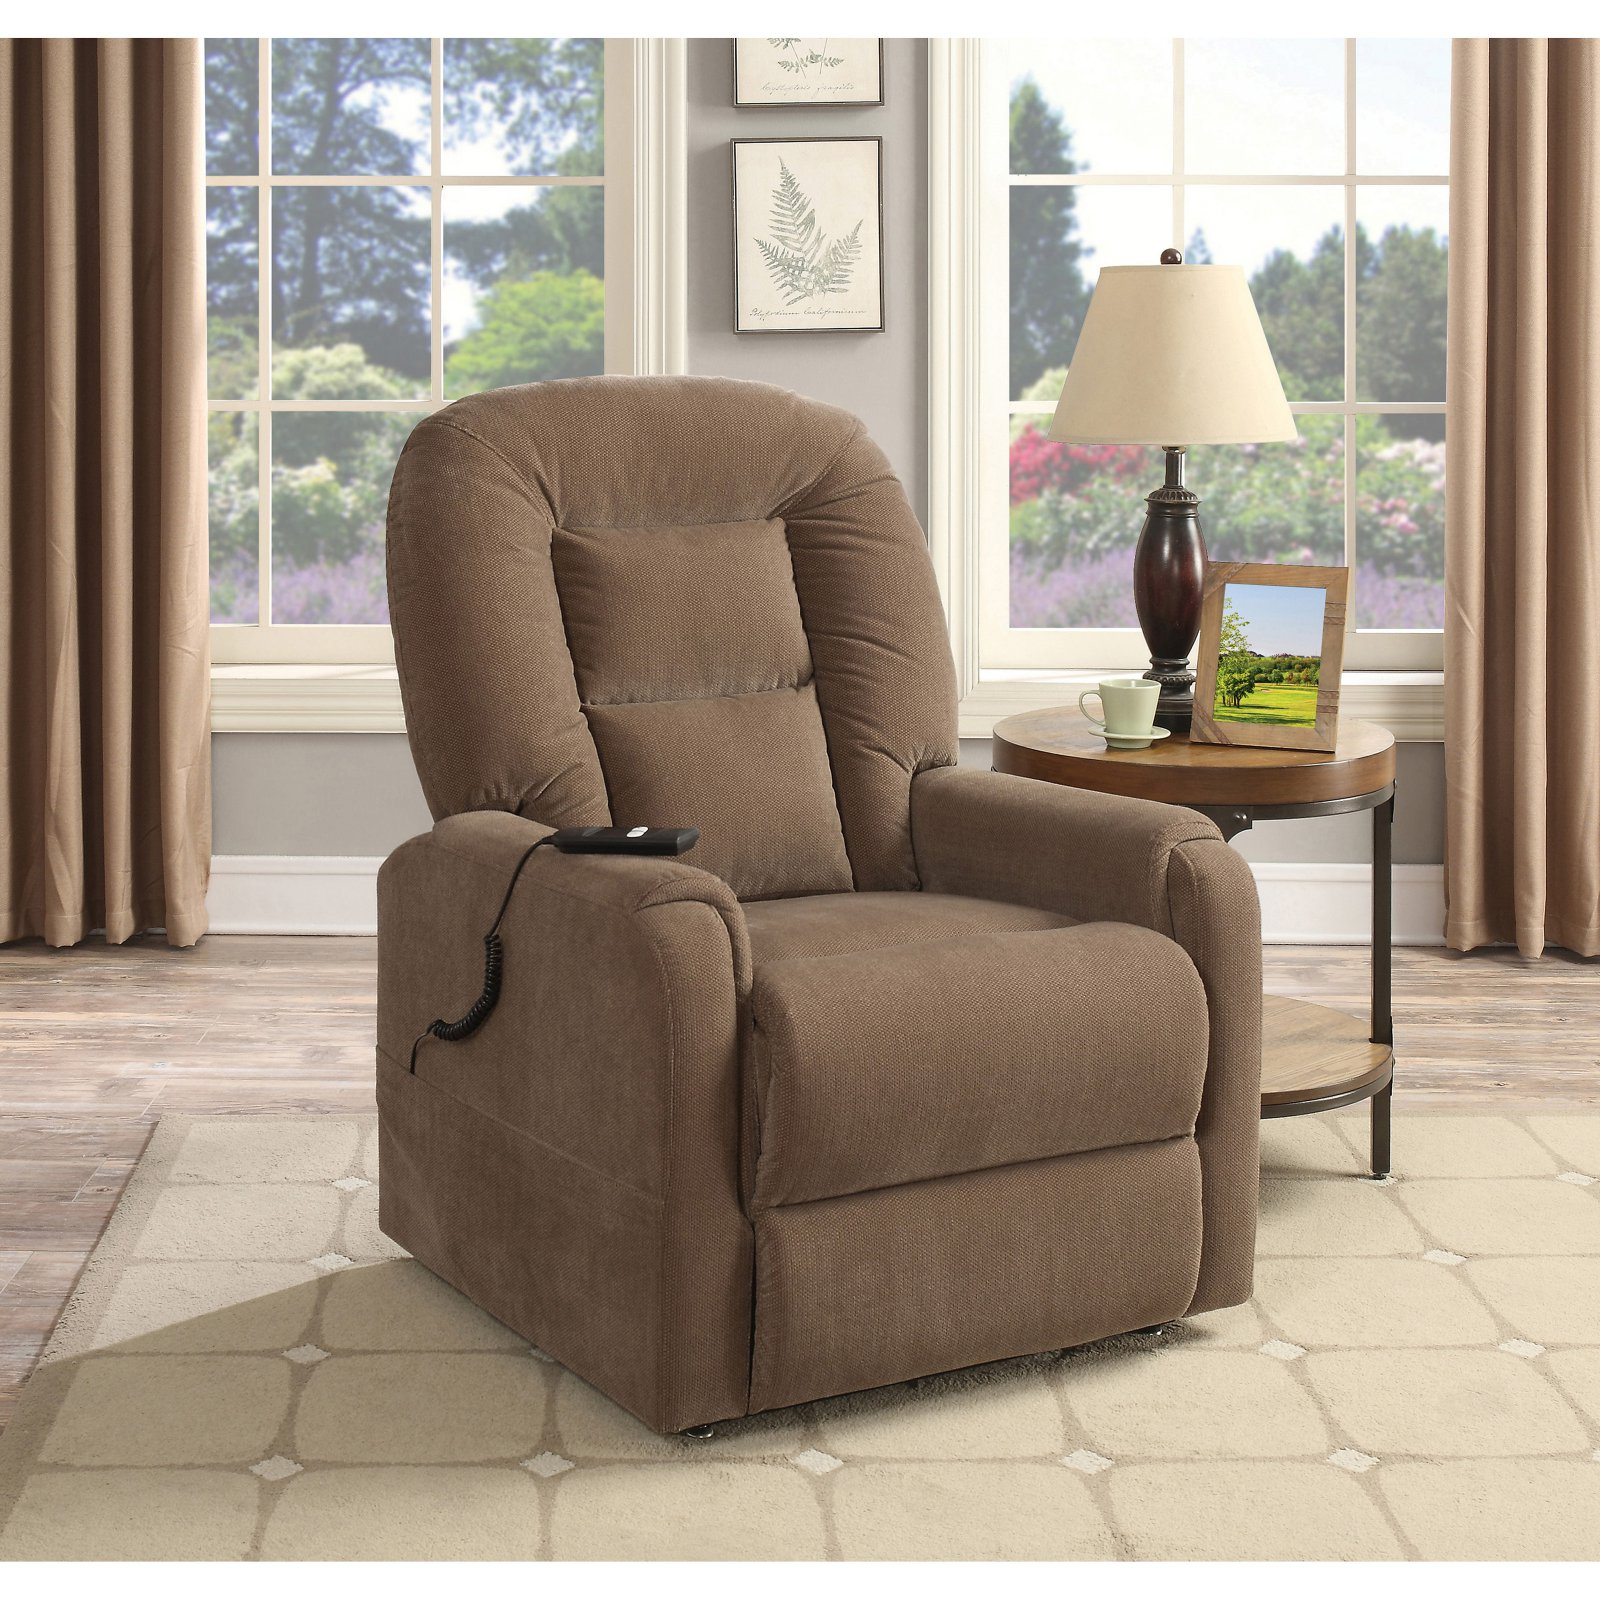 Right2Home Reclining Lift Chair - Raider Mocha